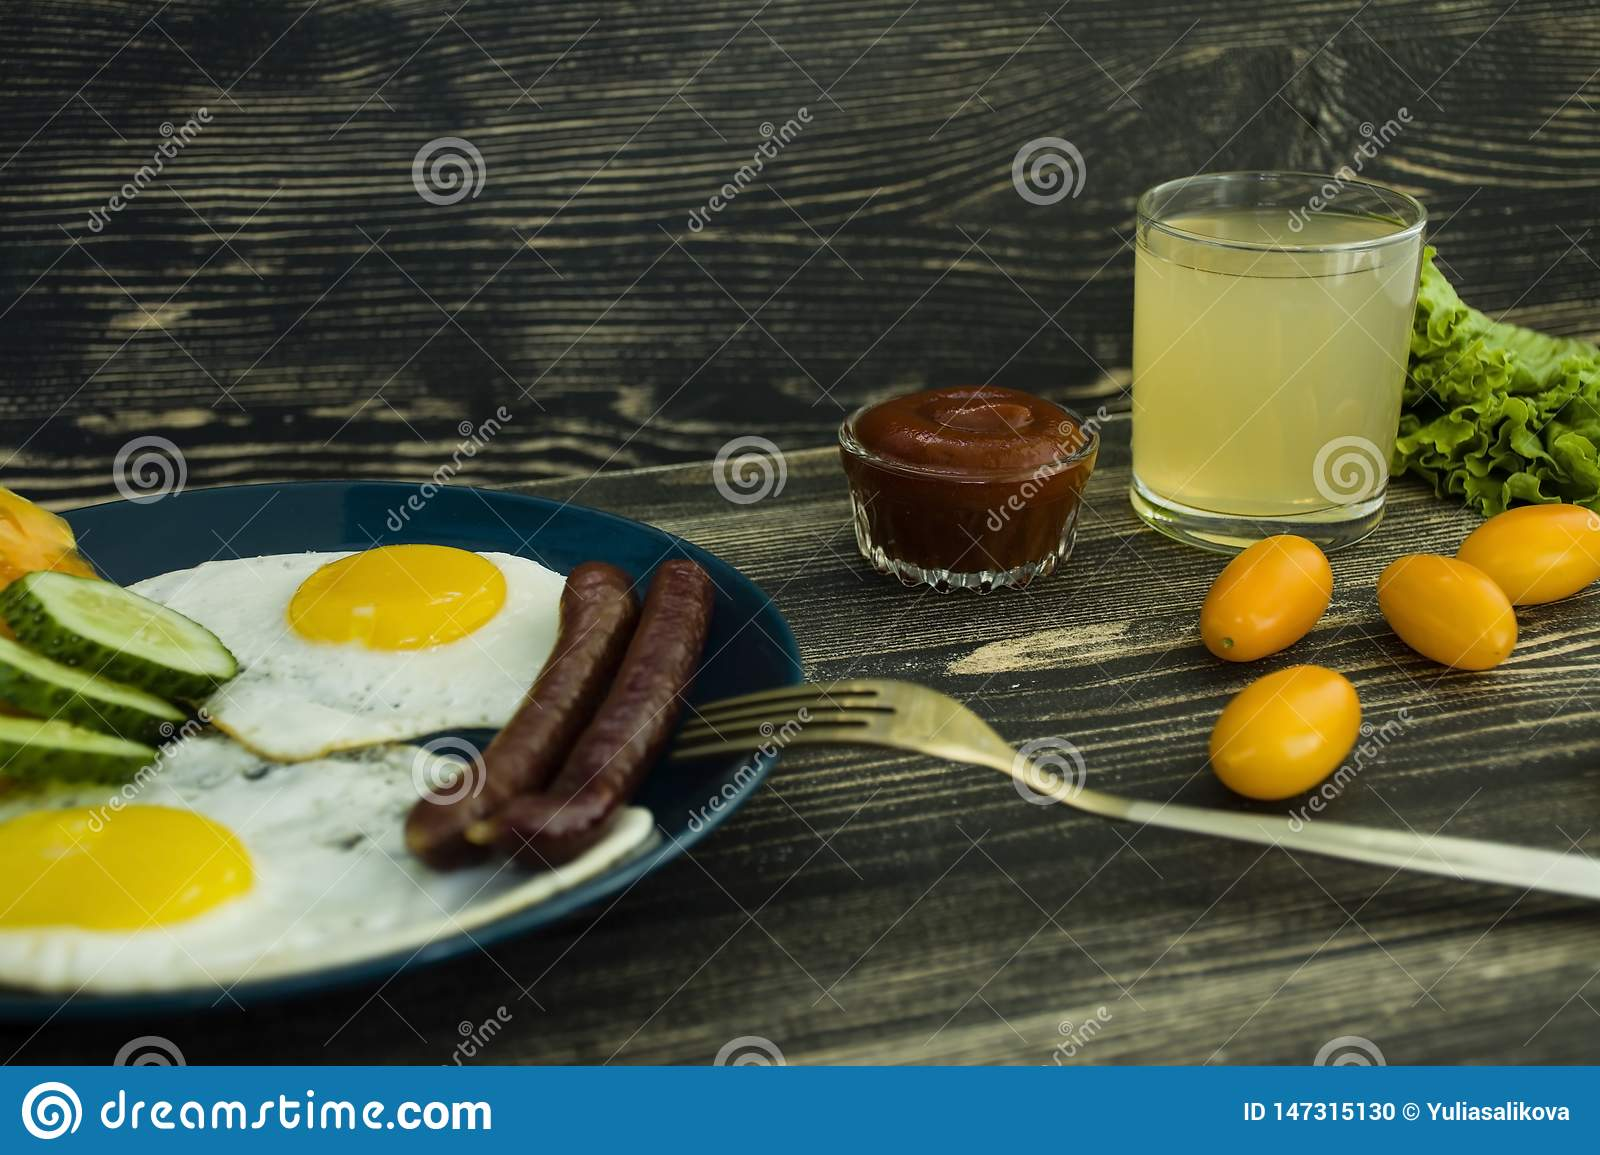 Homemade delicious breakfast with sunny side up fried egg, sausage, tomatos in top view